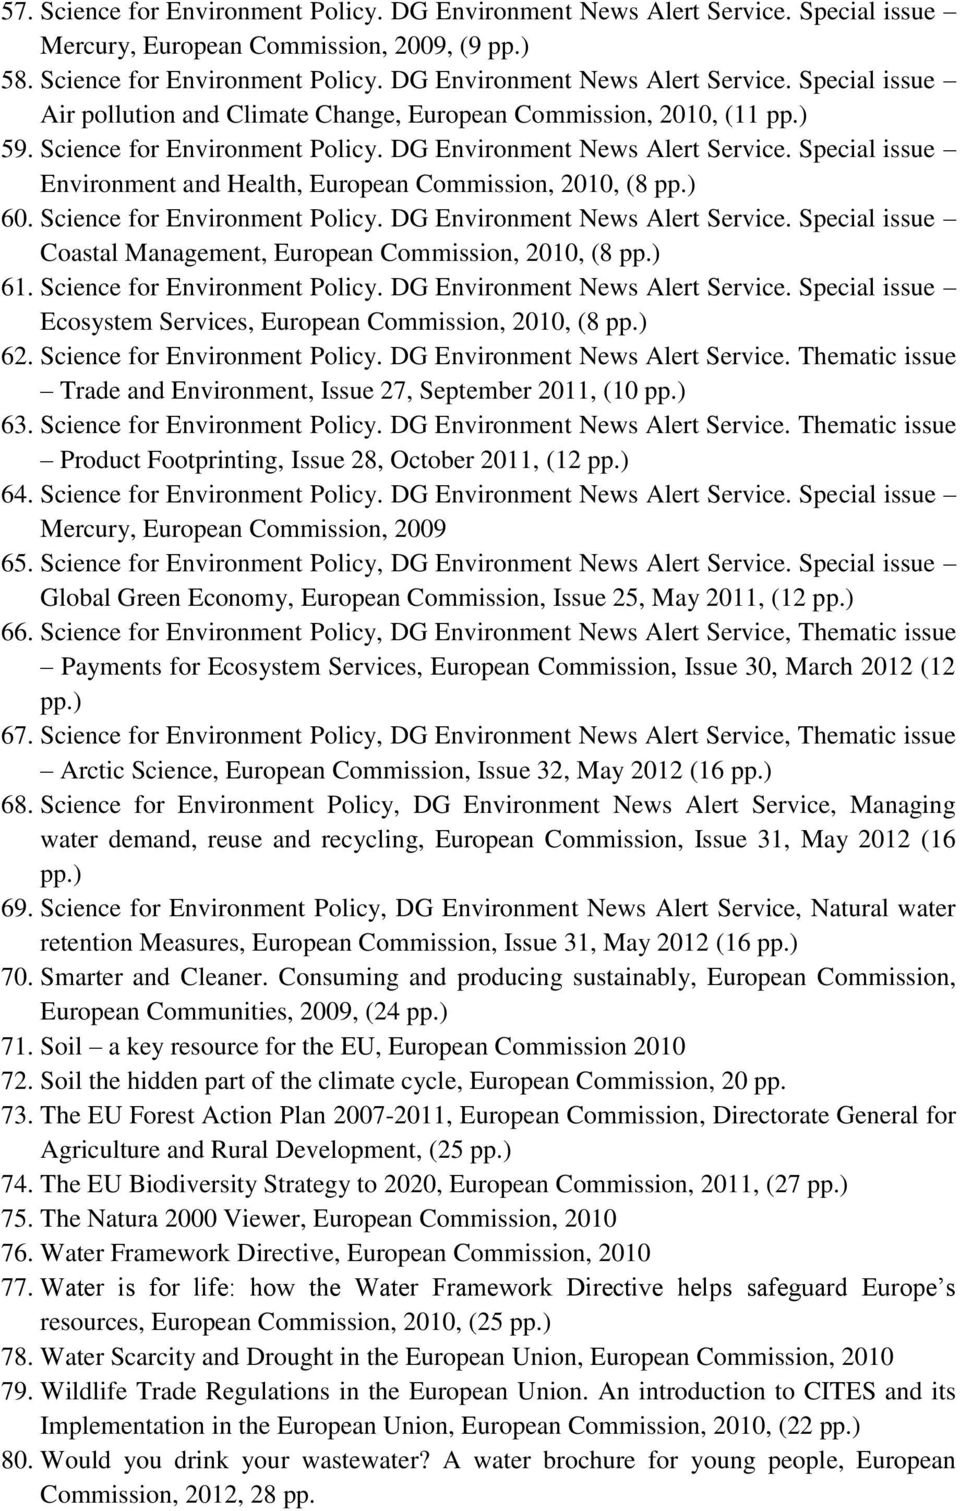 DG Environment News Alert Service. Special issue Coastal Management, European Commission, 2010, (8 61. Science for Environment Policy. DG Environment News Alert Service.